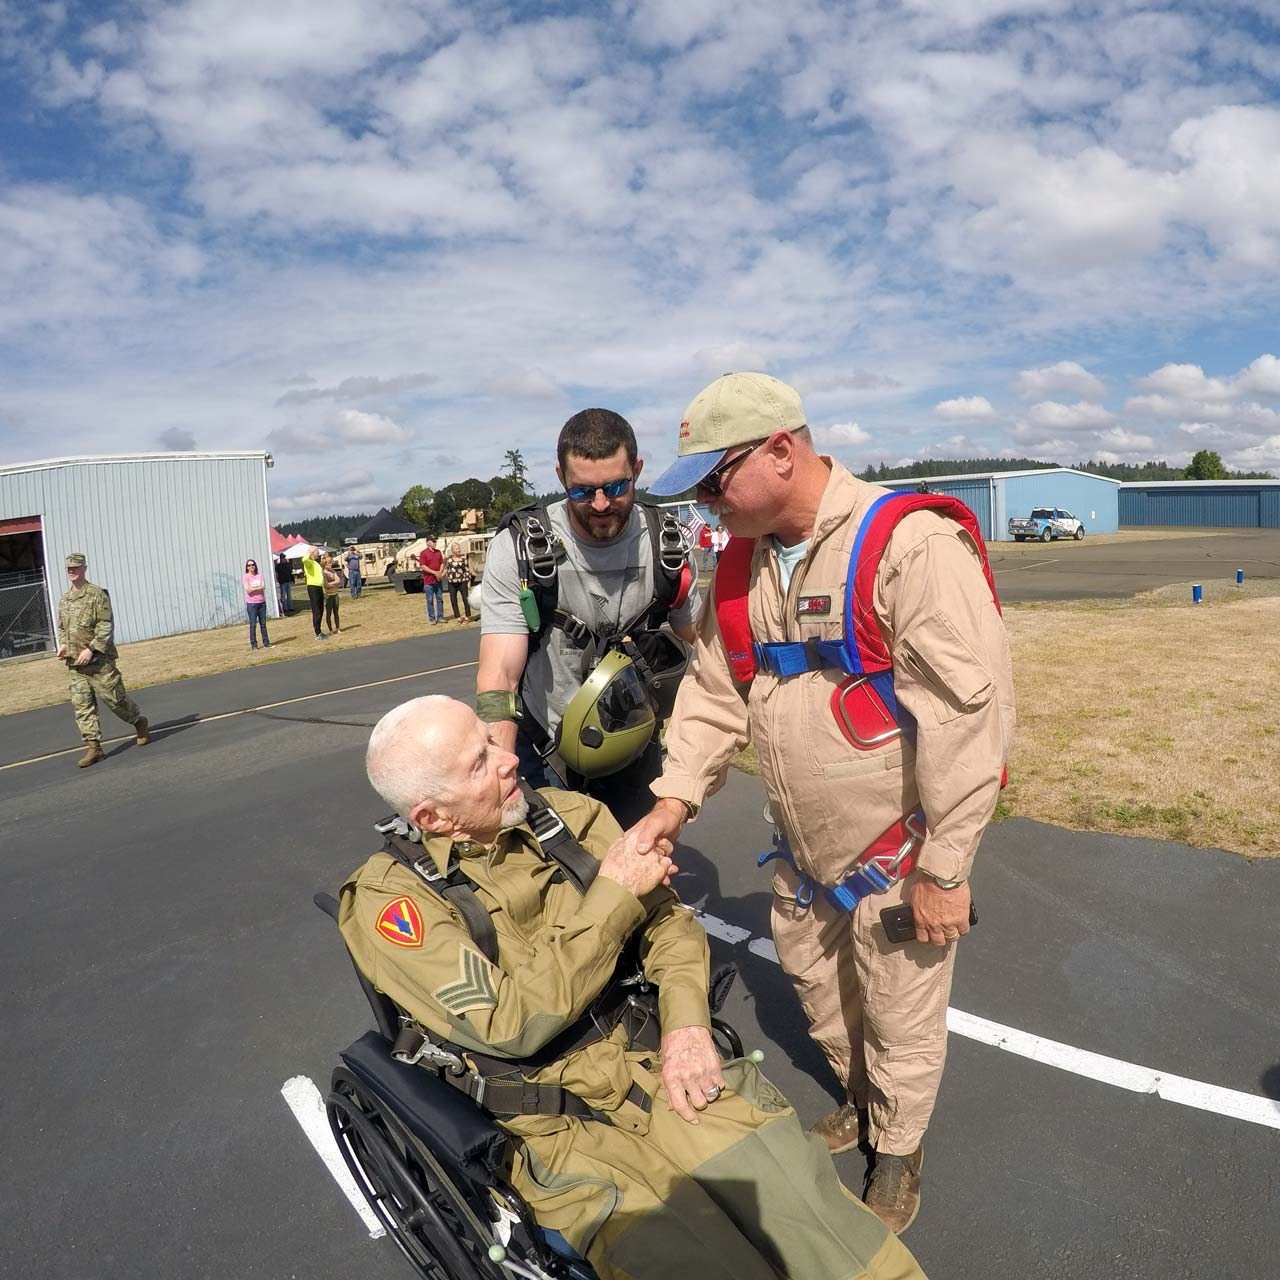 Elderly veteran in wheelchair preparing to tandem skydive at PNW Skydiving near Portland, OR